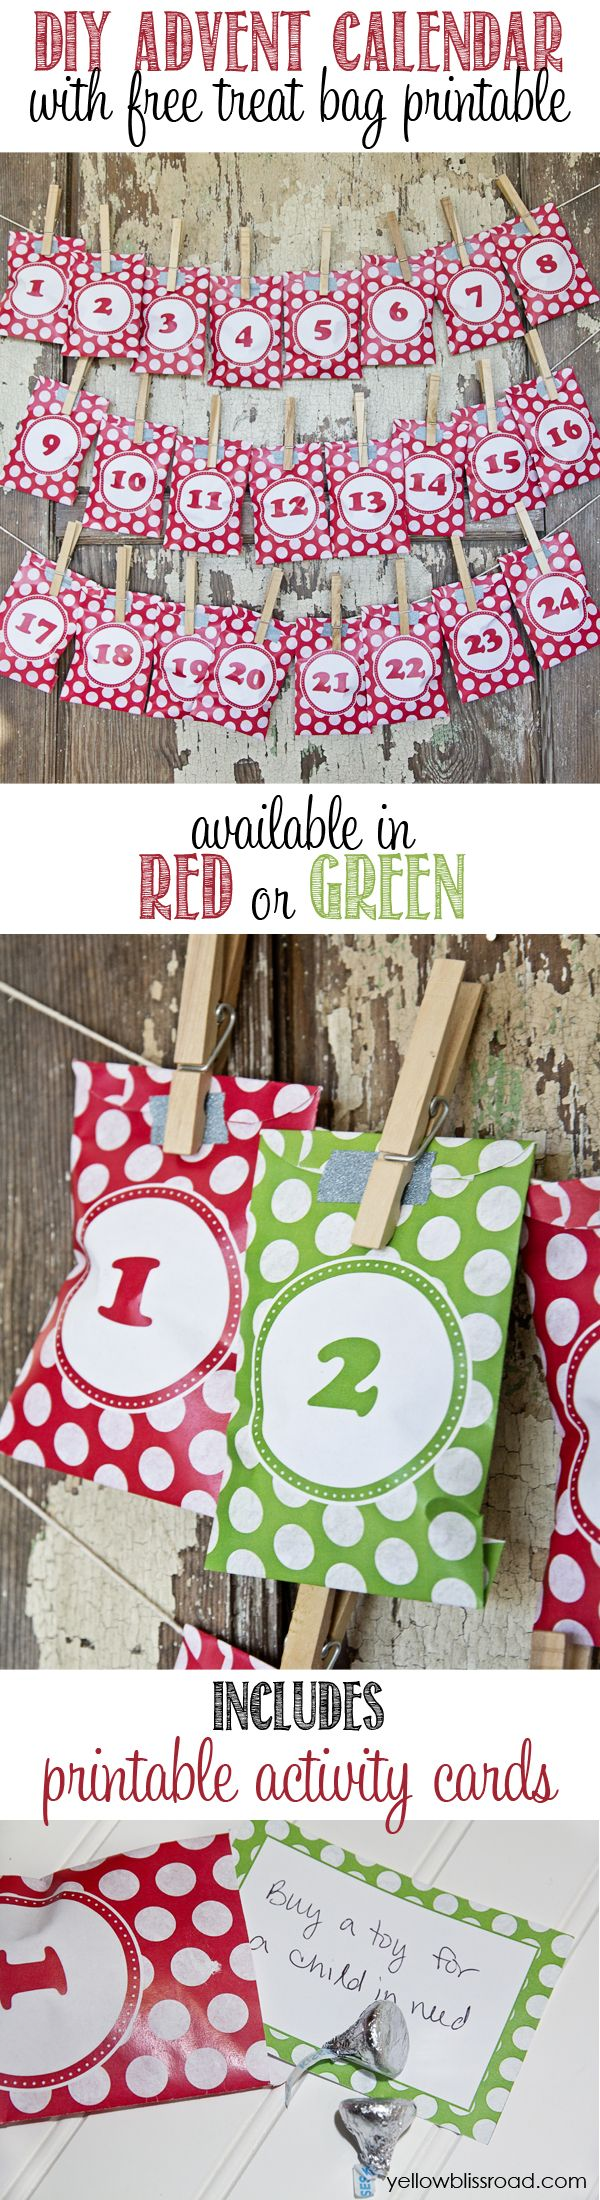 DIY Advent Calendar with free treat bag printables - Comes in red and green and includes advent activity cards!